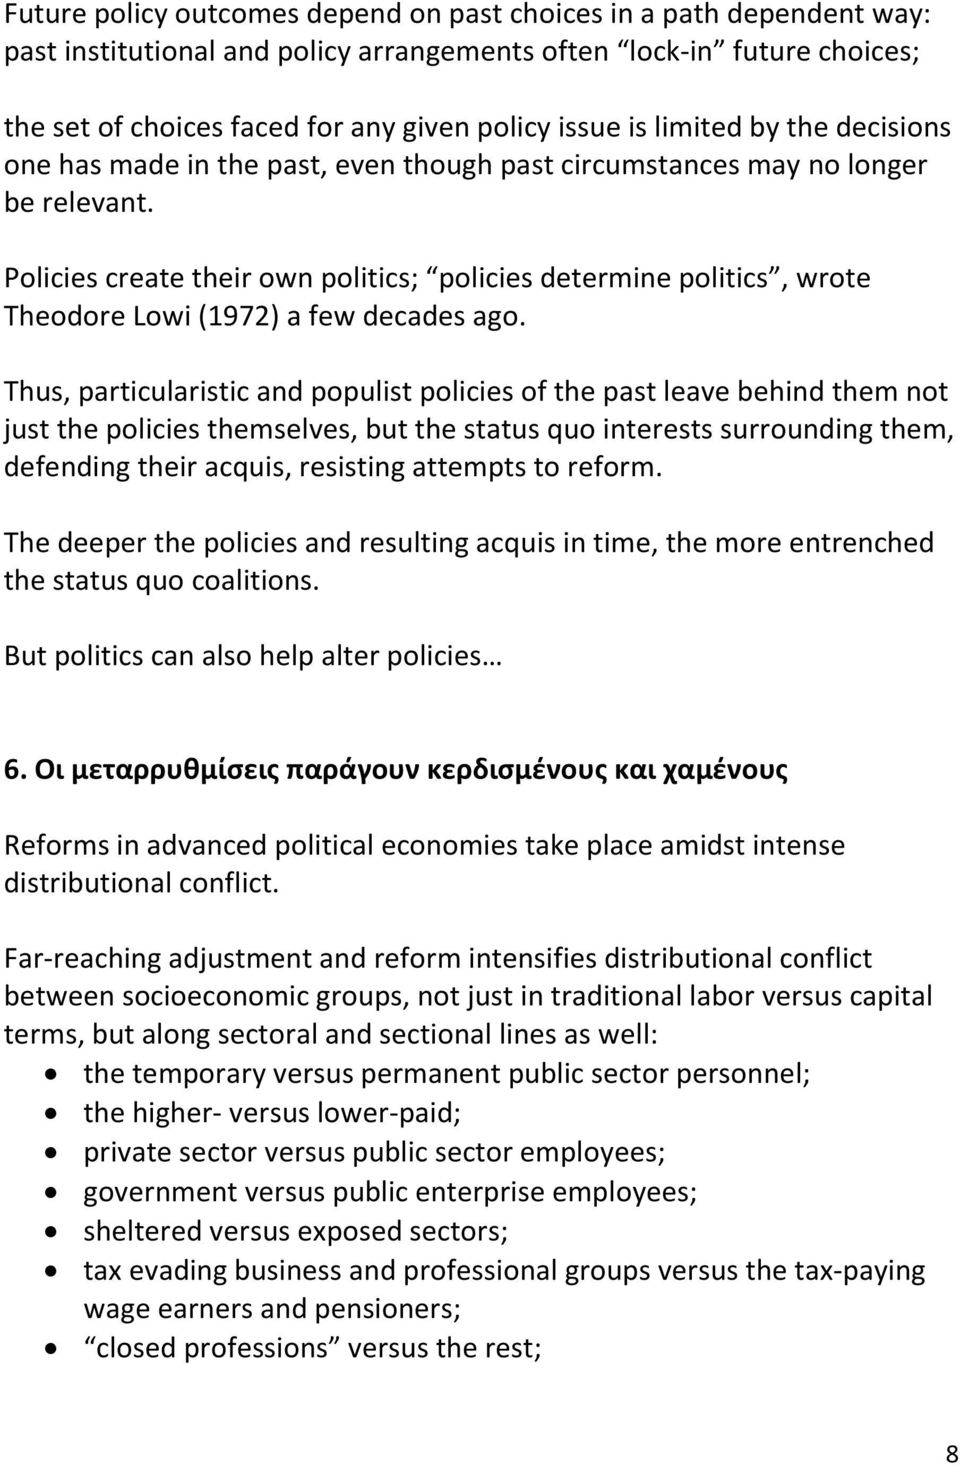 Policies create their own politics; policies determine politics, wrote Theodore Lowi (1972) a few decades ago.